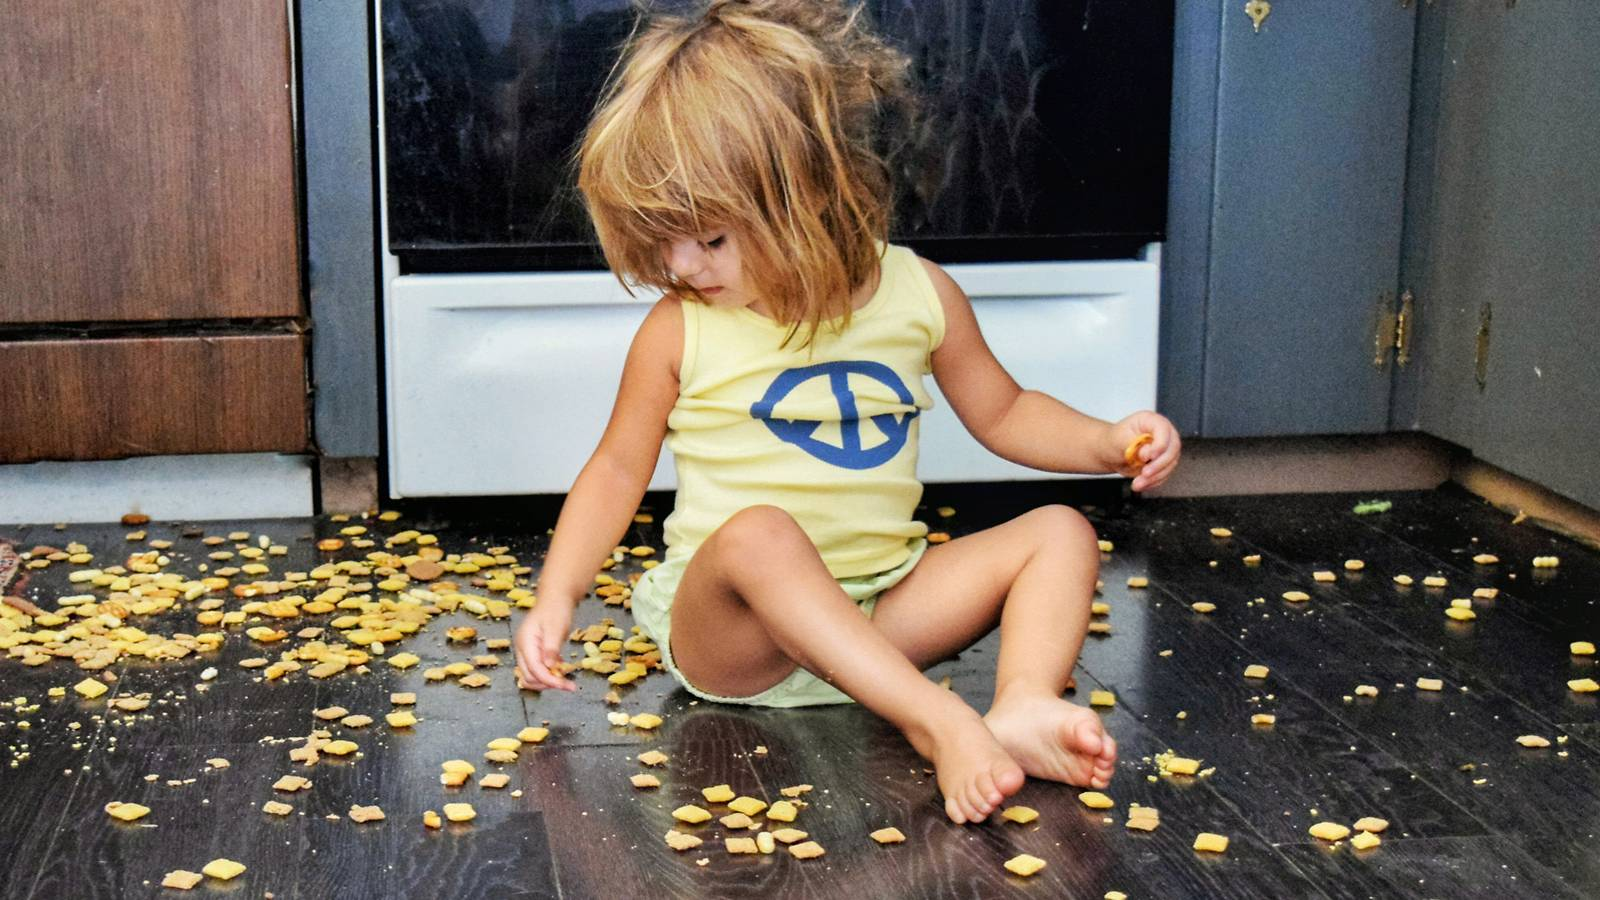 Tots-8-annoying-but-important-toddler-habits1